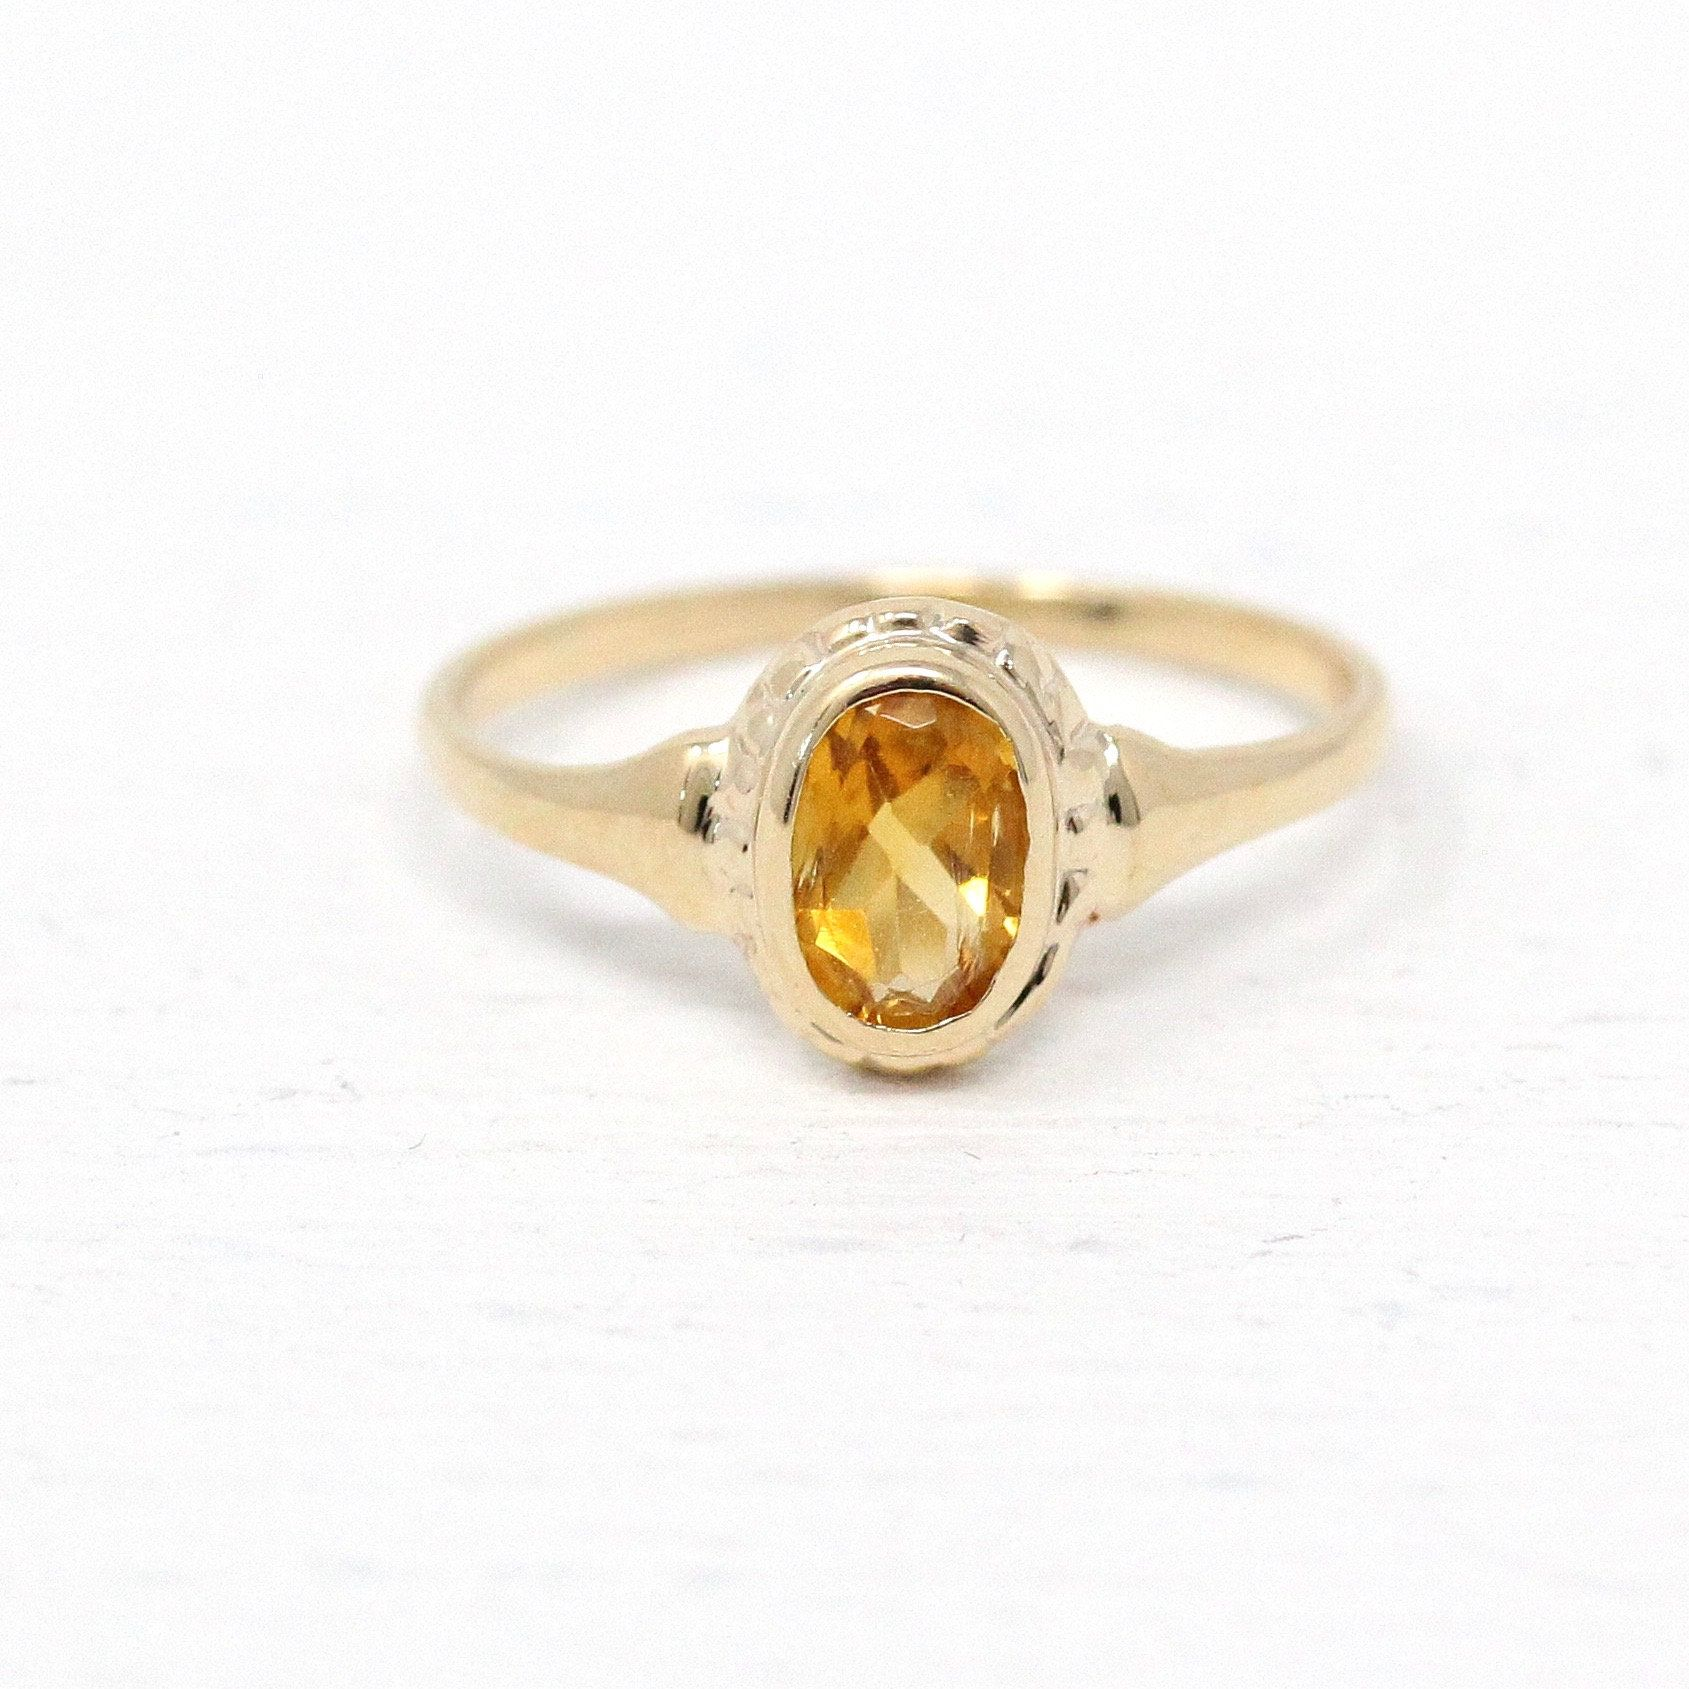 Vintage Citrine Ring Art Deco 10k Yellow Gold 42 Ct Yellow Gemstone 1930s Size 2 Midi Childrens Knuckle Petite Fine Jewelry With Images Rings Yellow Gemstones Gold